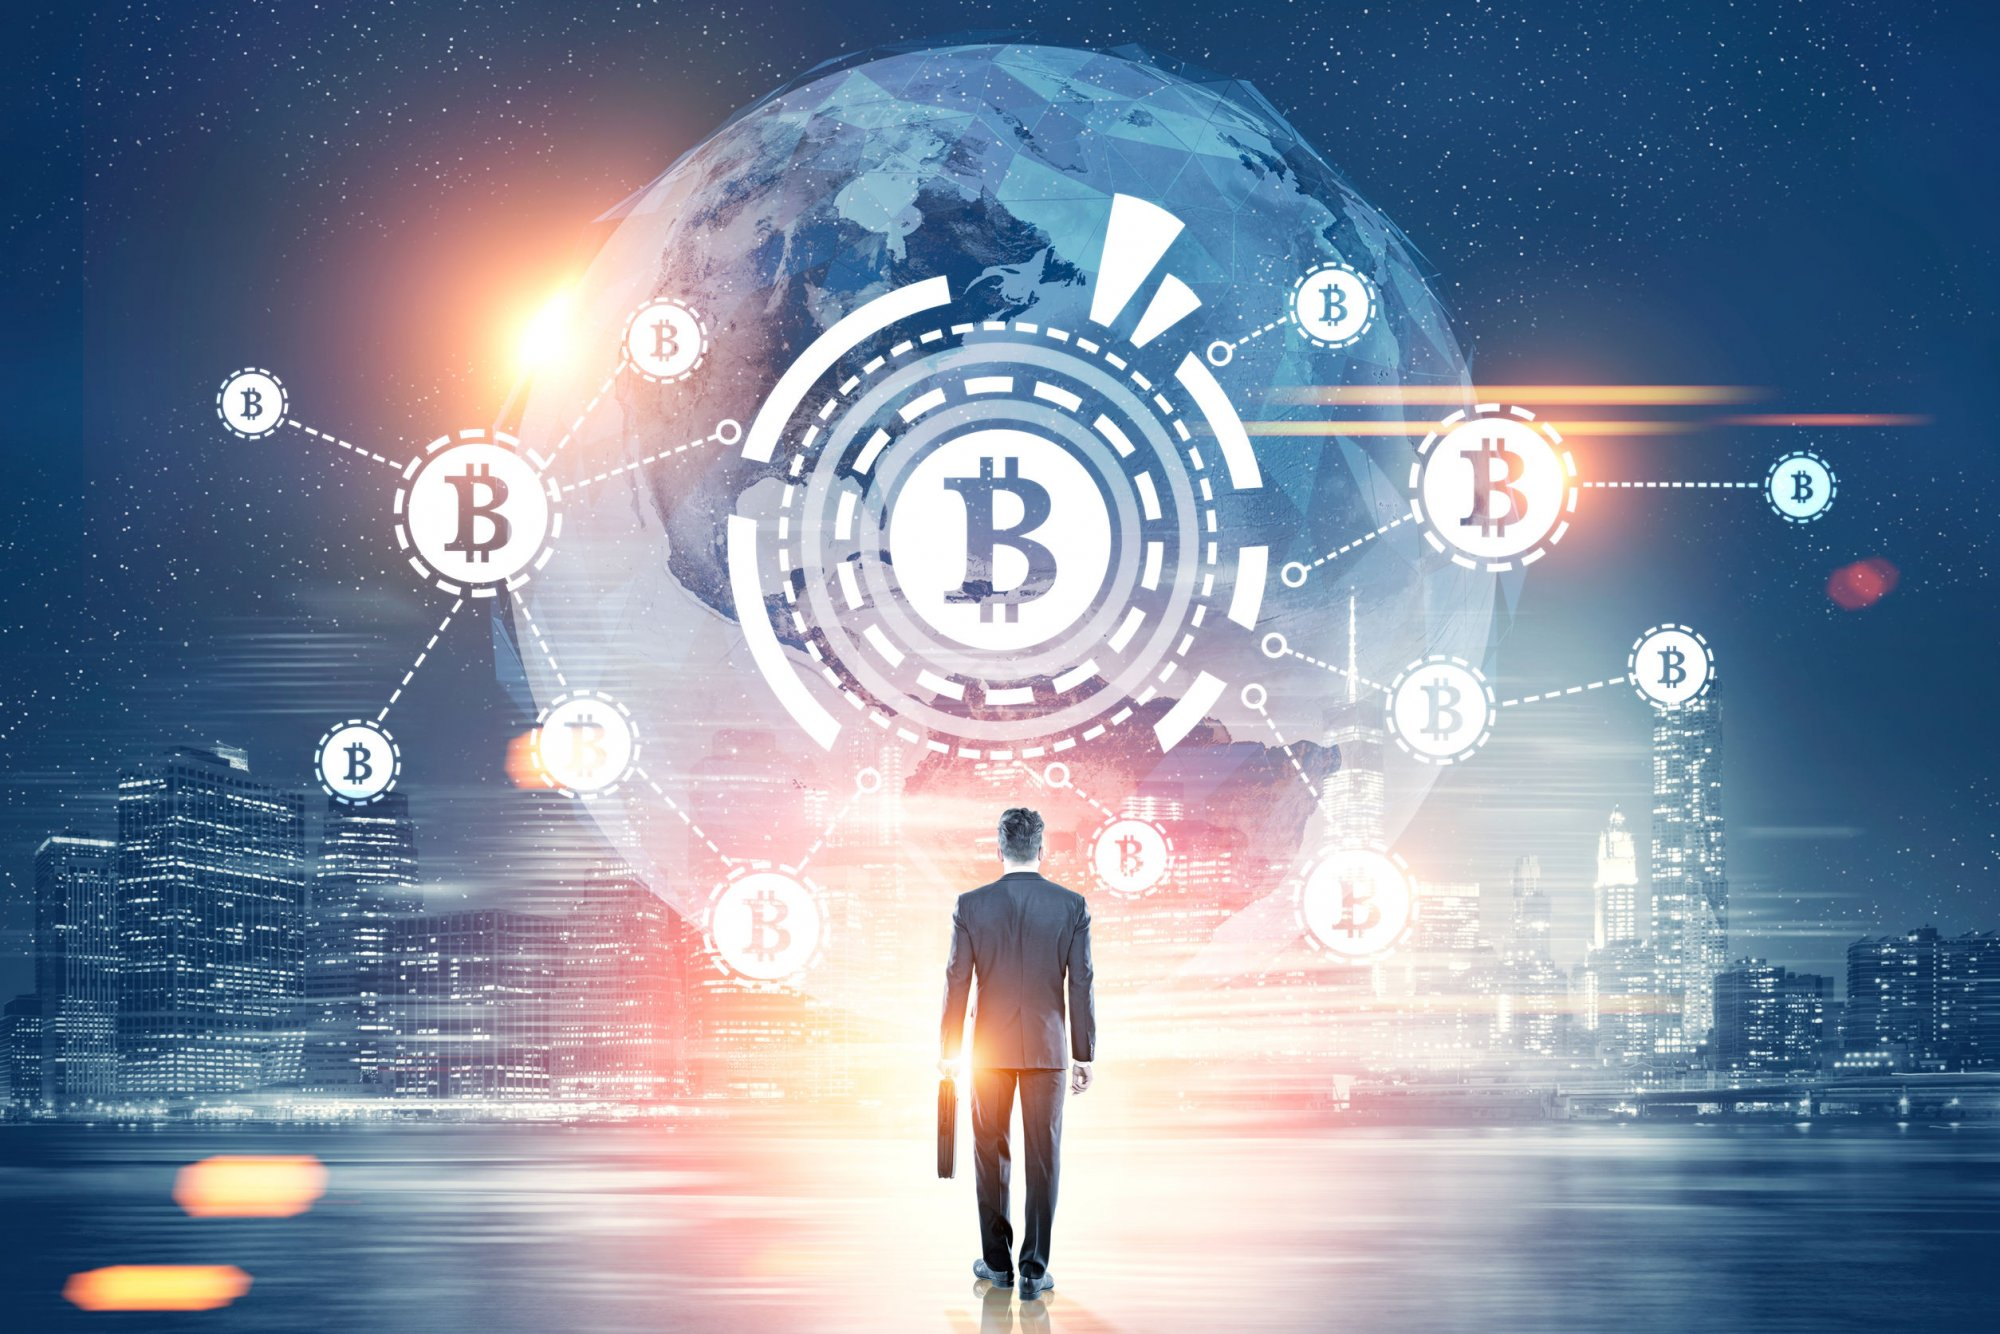 Institutional investor looks at Bitcoin